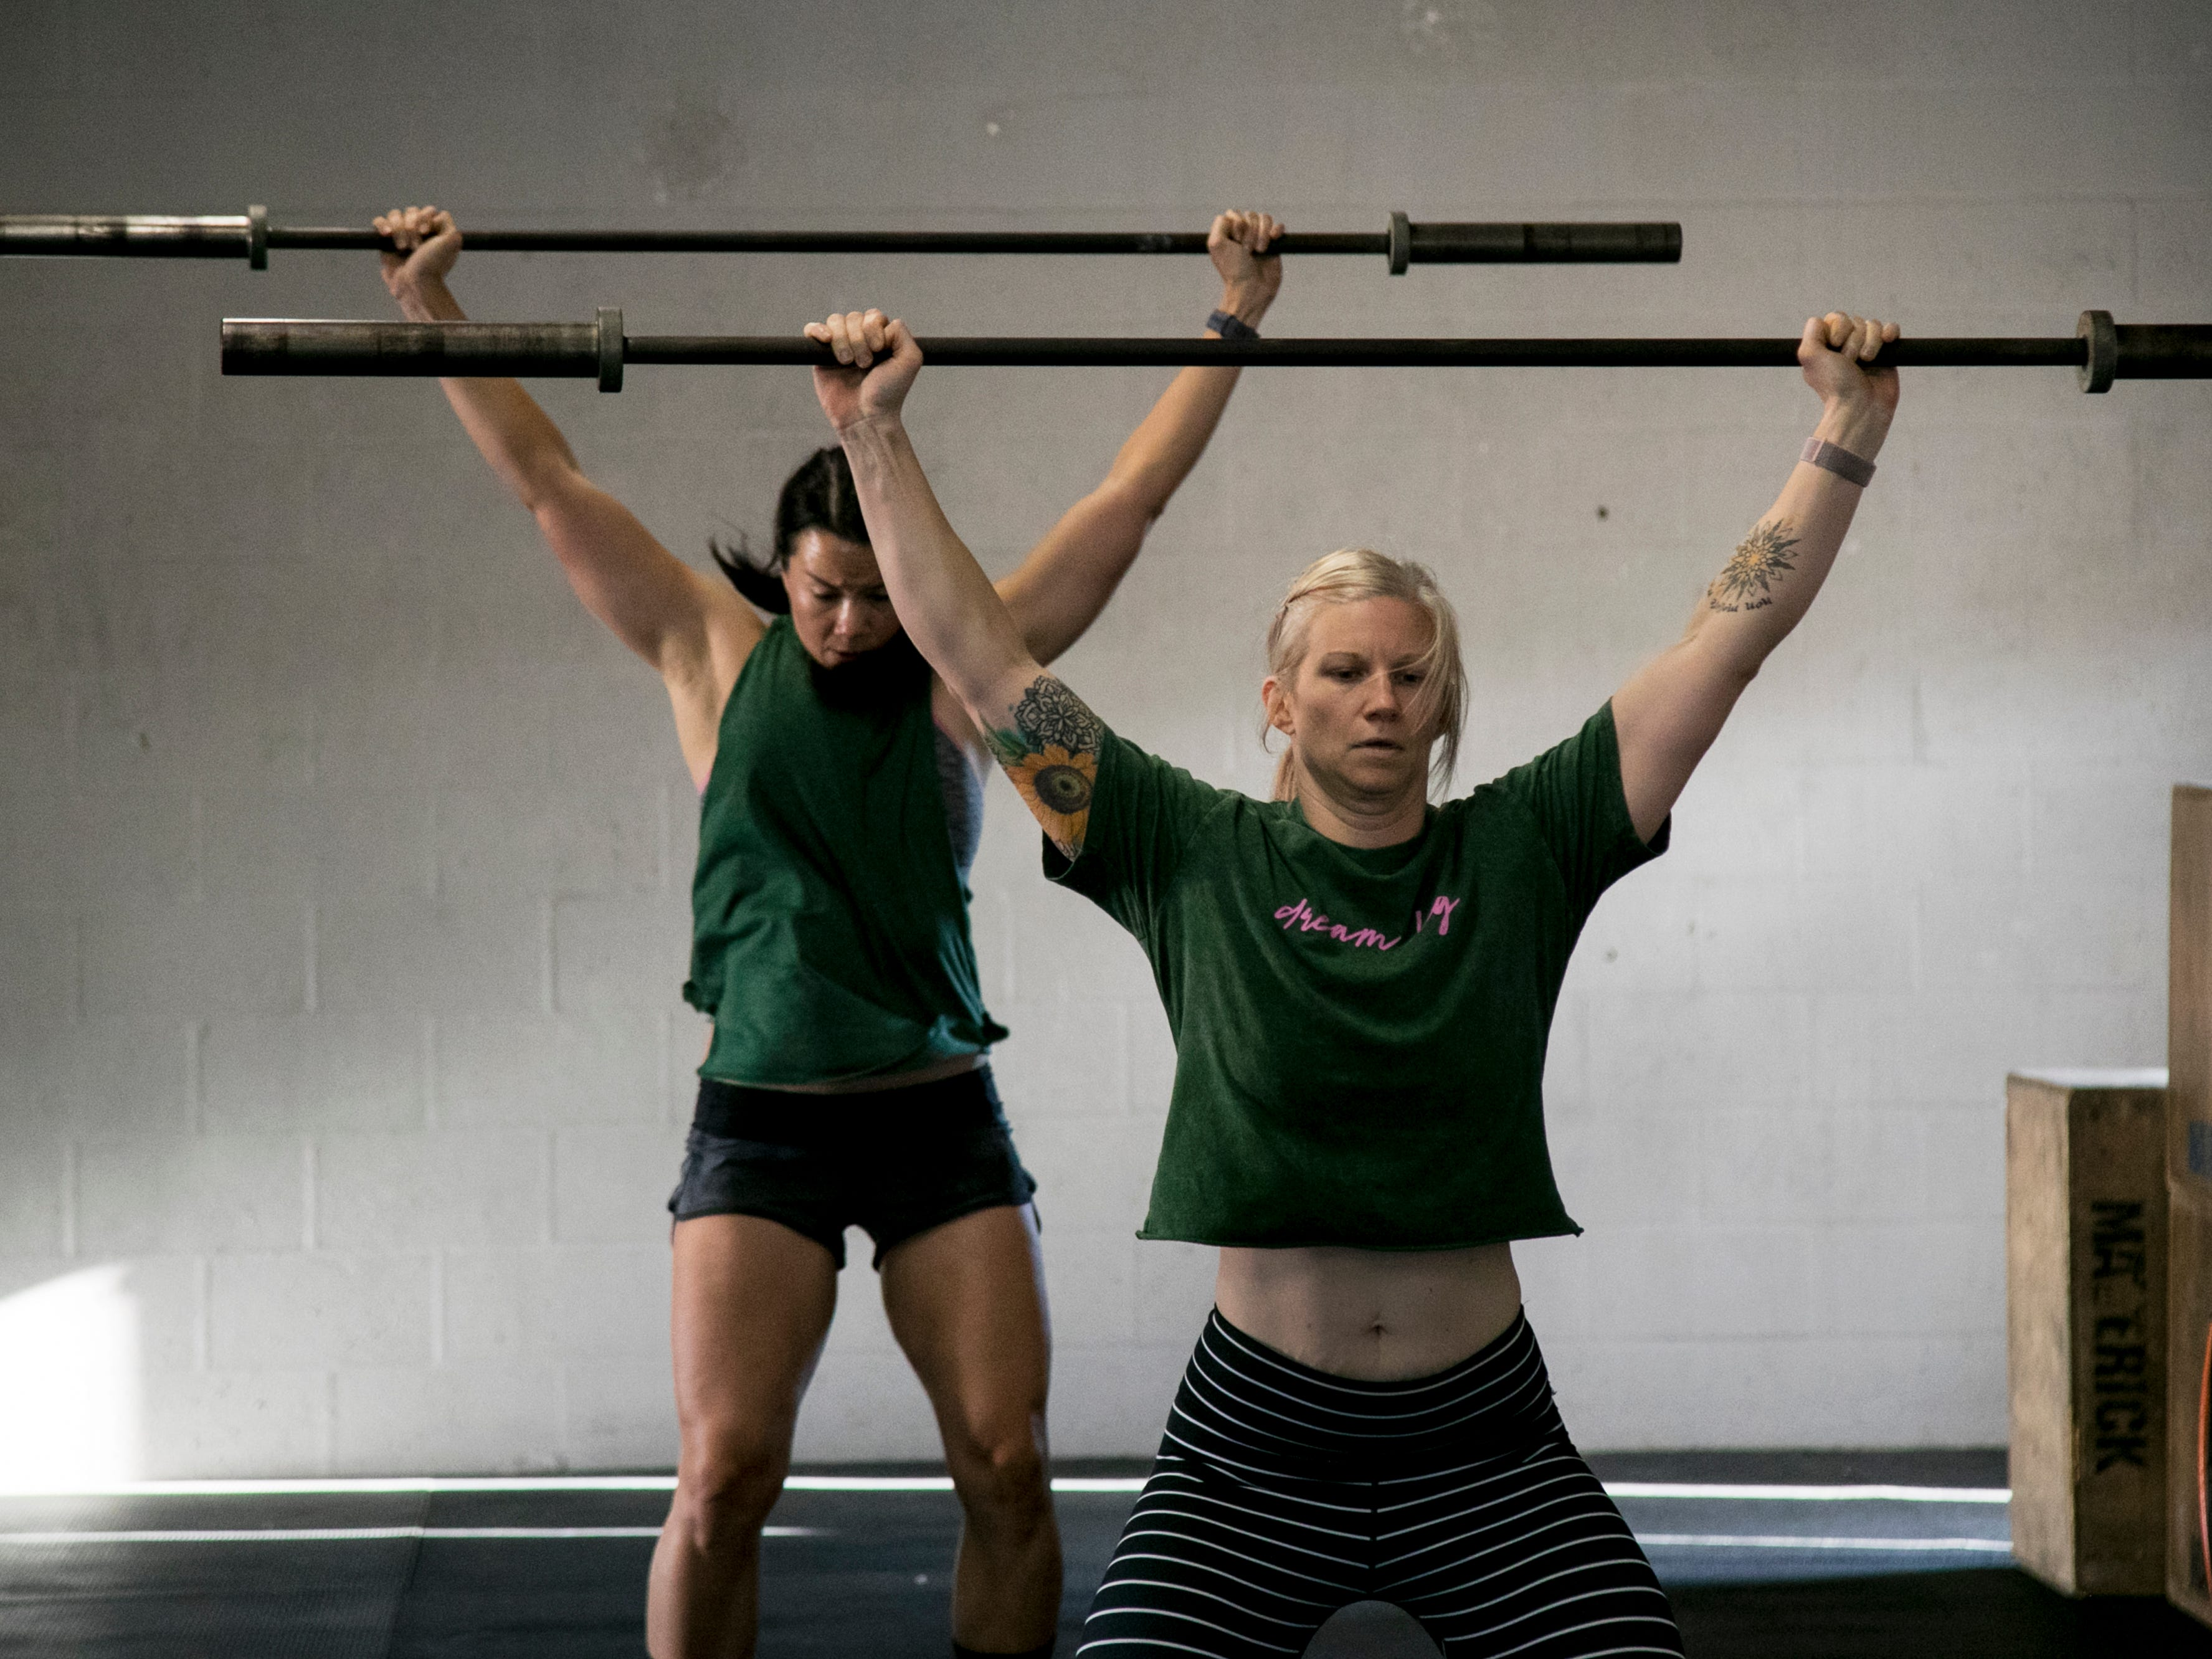 Kari Connors, right, and Annabelle Tometich warm up before the CrossFit Open 19.4 workout on Friday, March 15, 2019, at CrossFit 239 in Fort Myers.